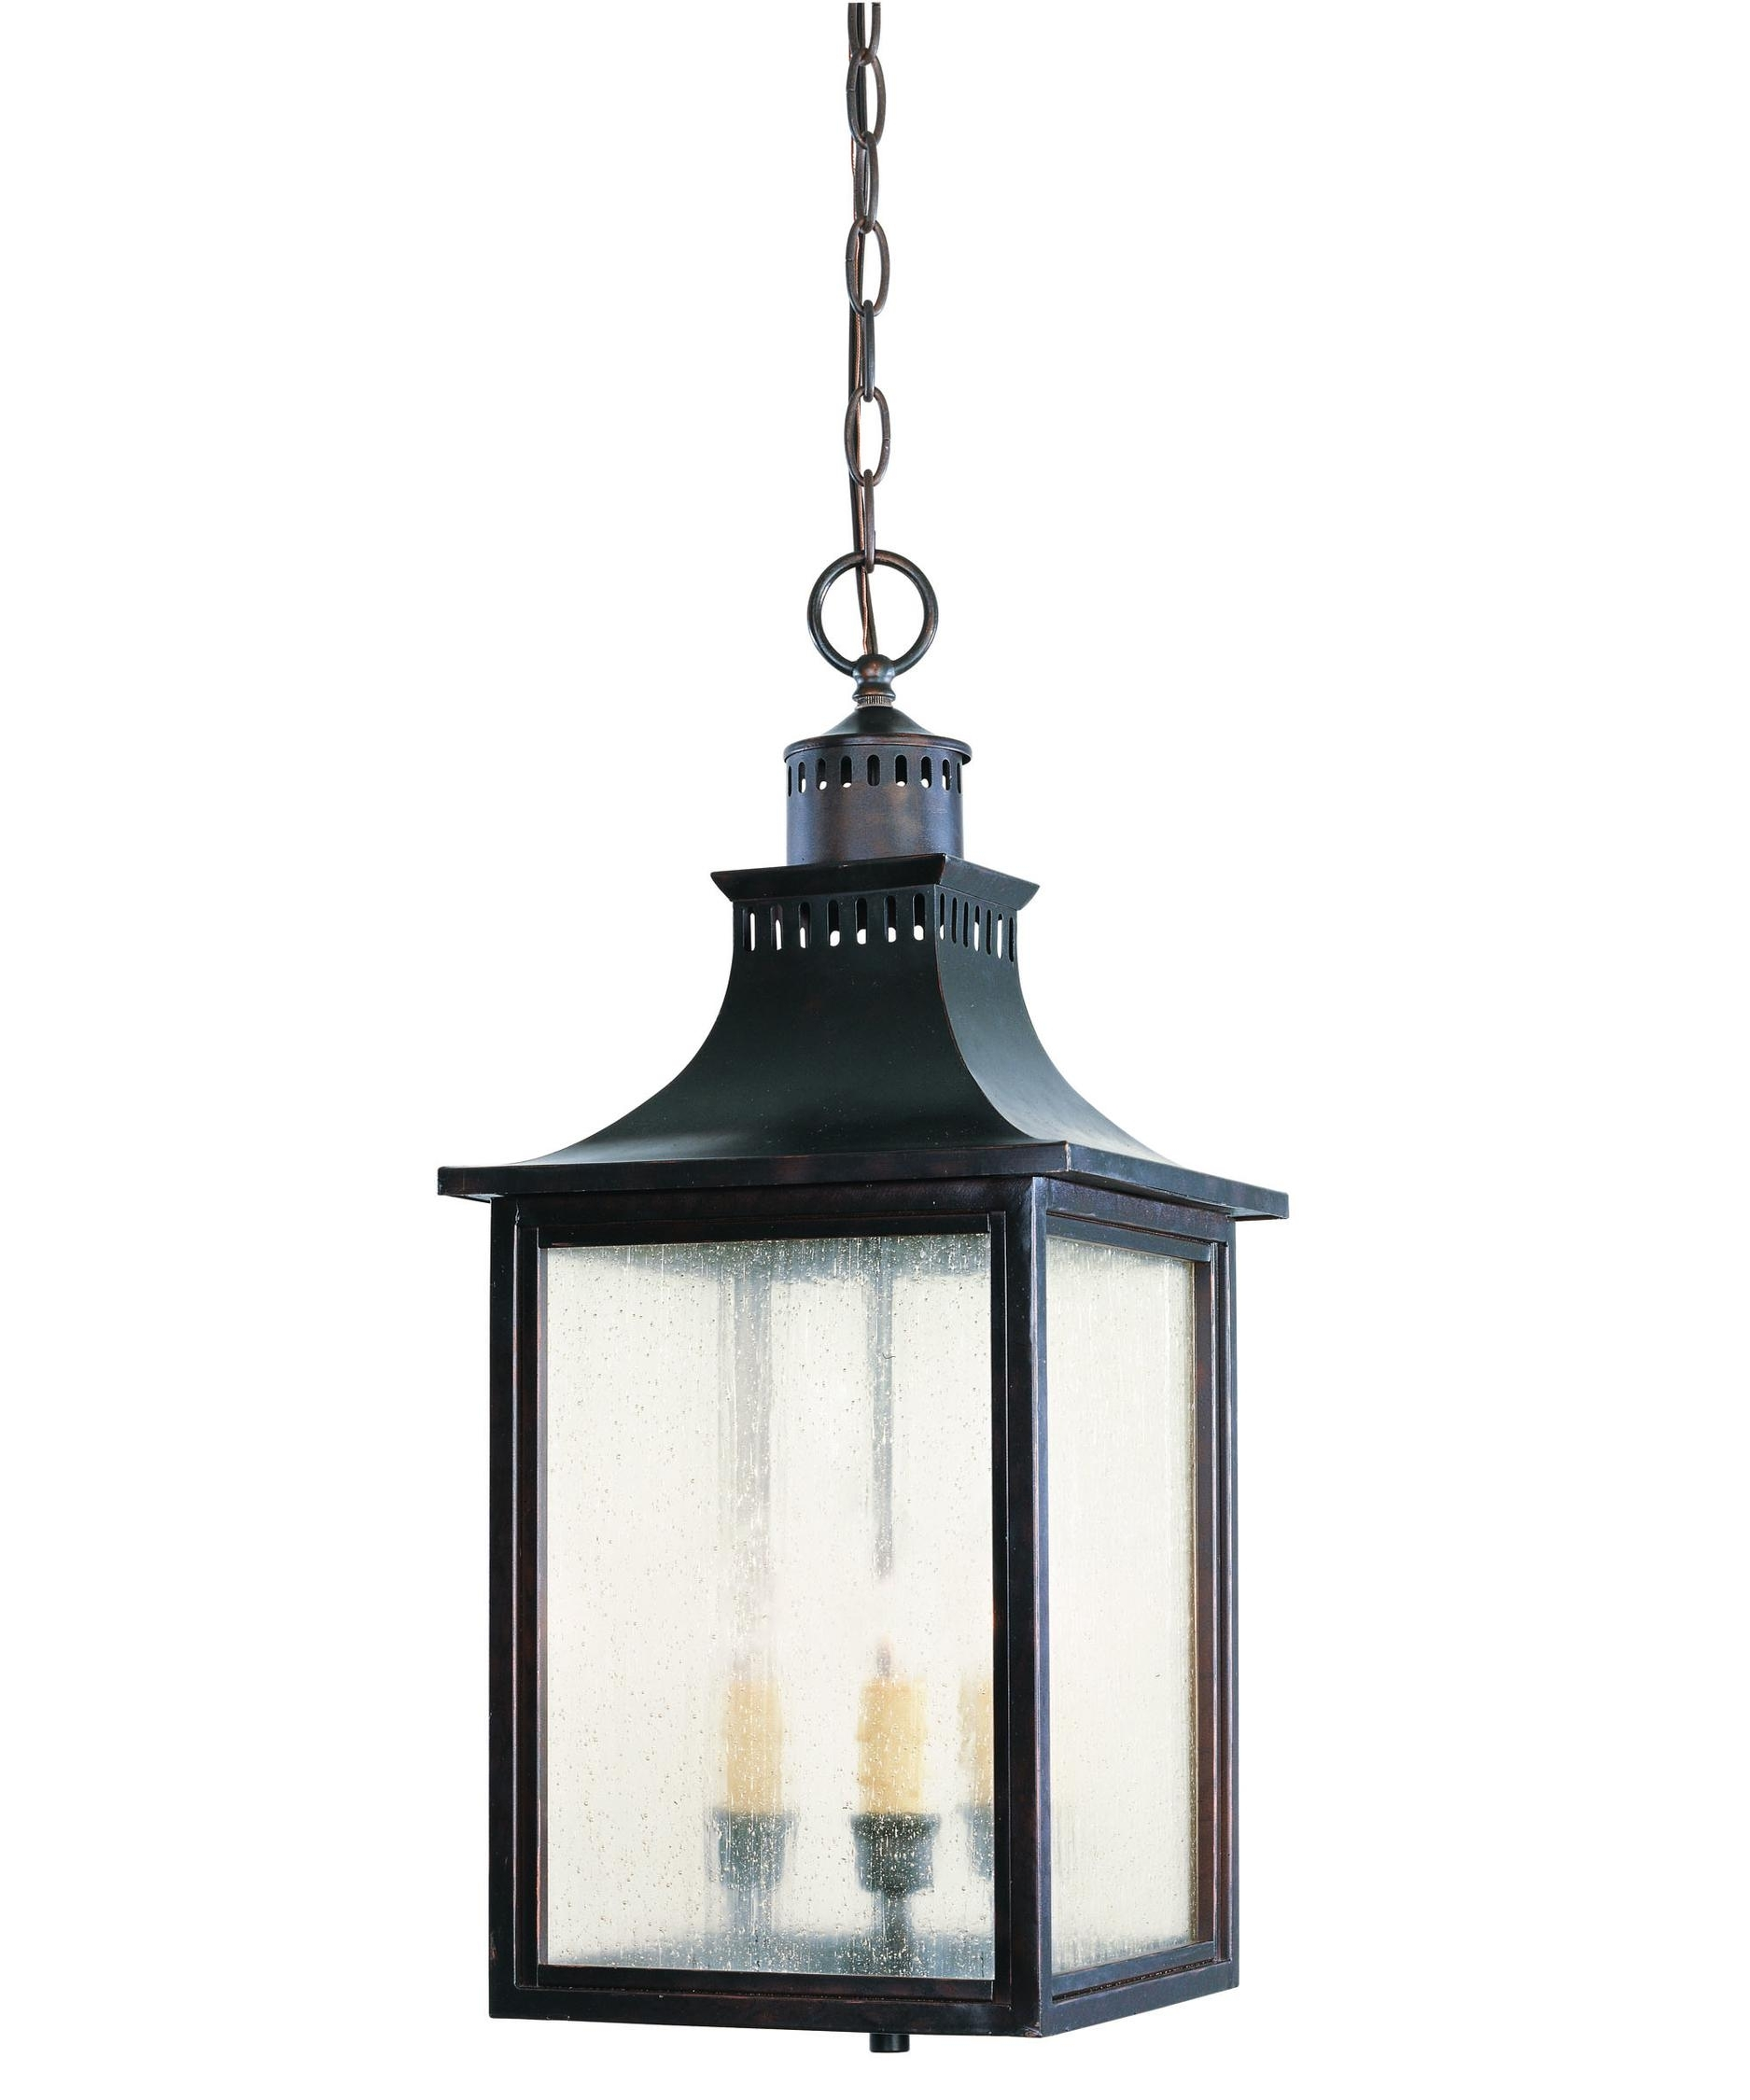 Savoy House 5 256 Monte Grande 10 Inch Wide 3 Light Outdoor Hanging Inside Outdoor Electric Lanterns (View 16 of 20)